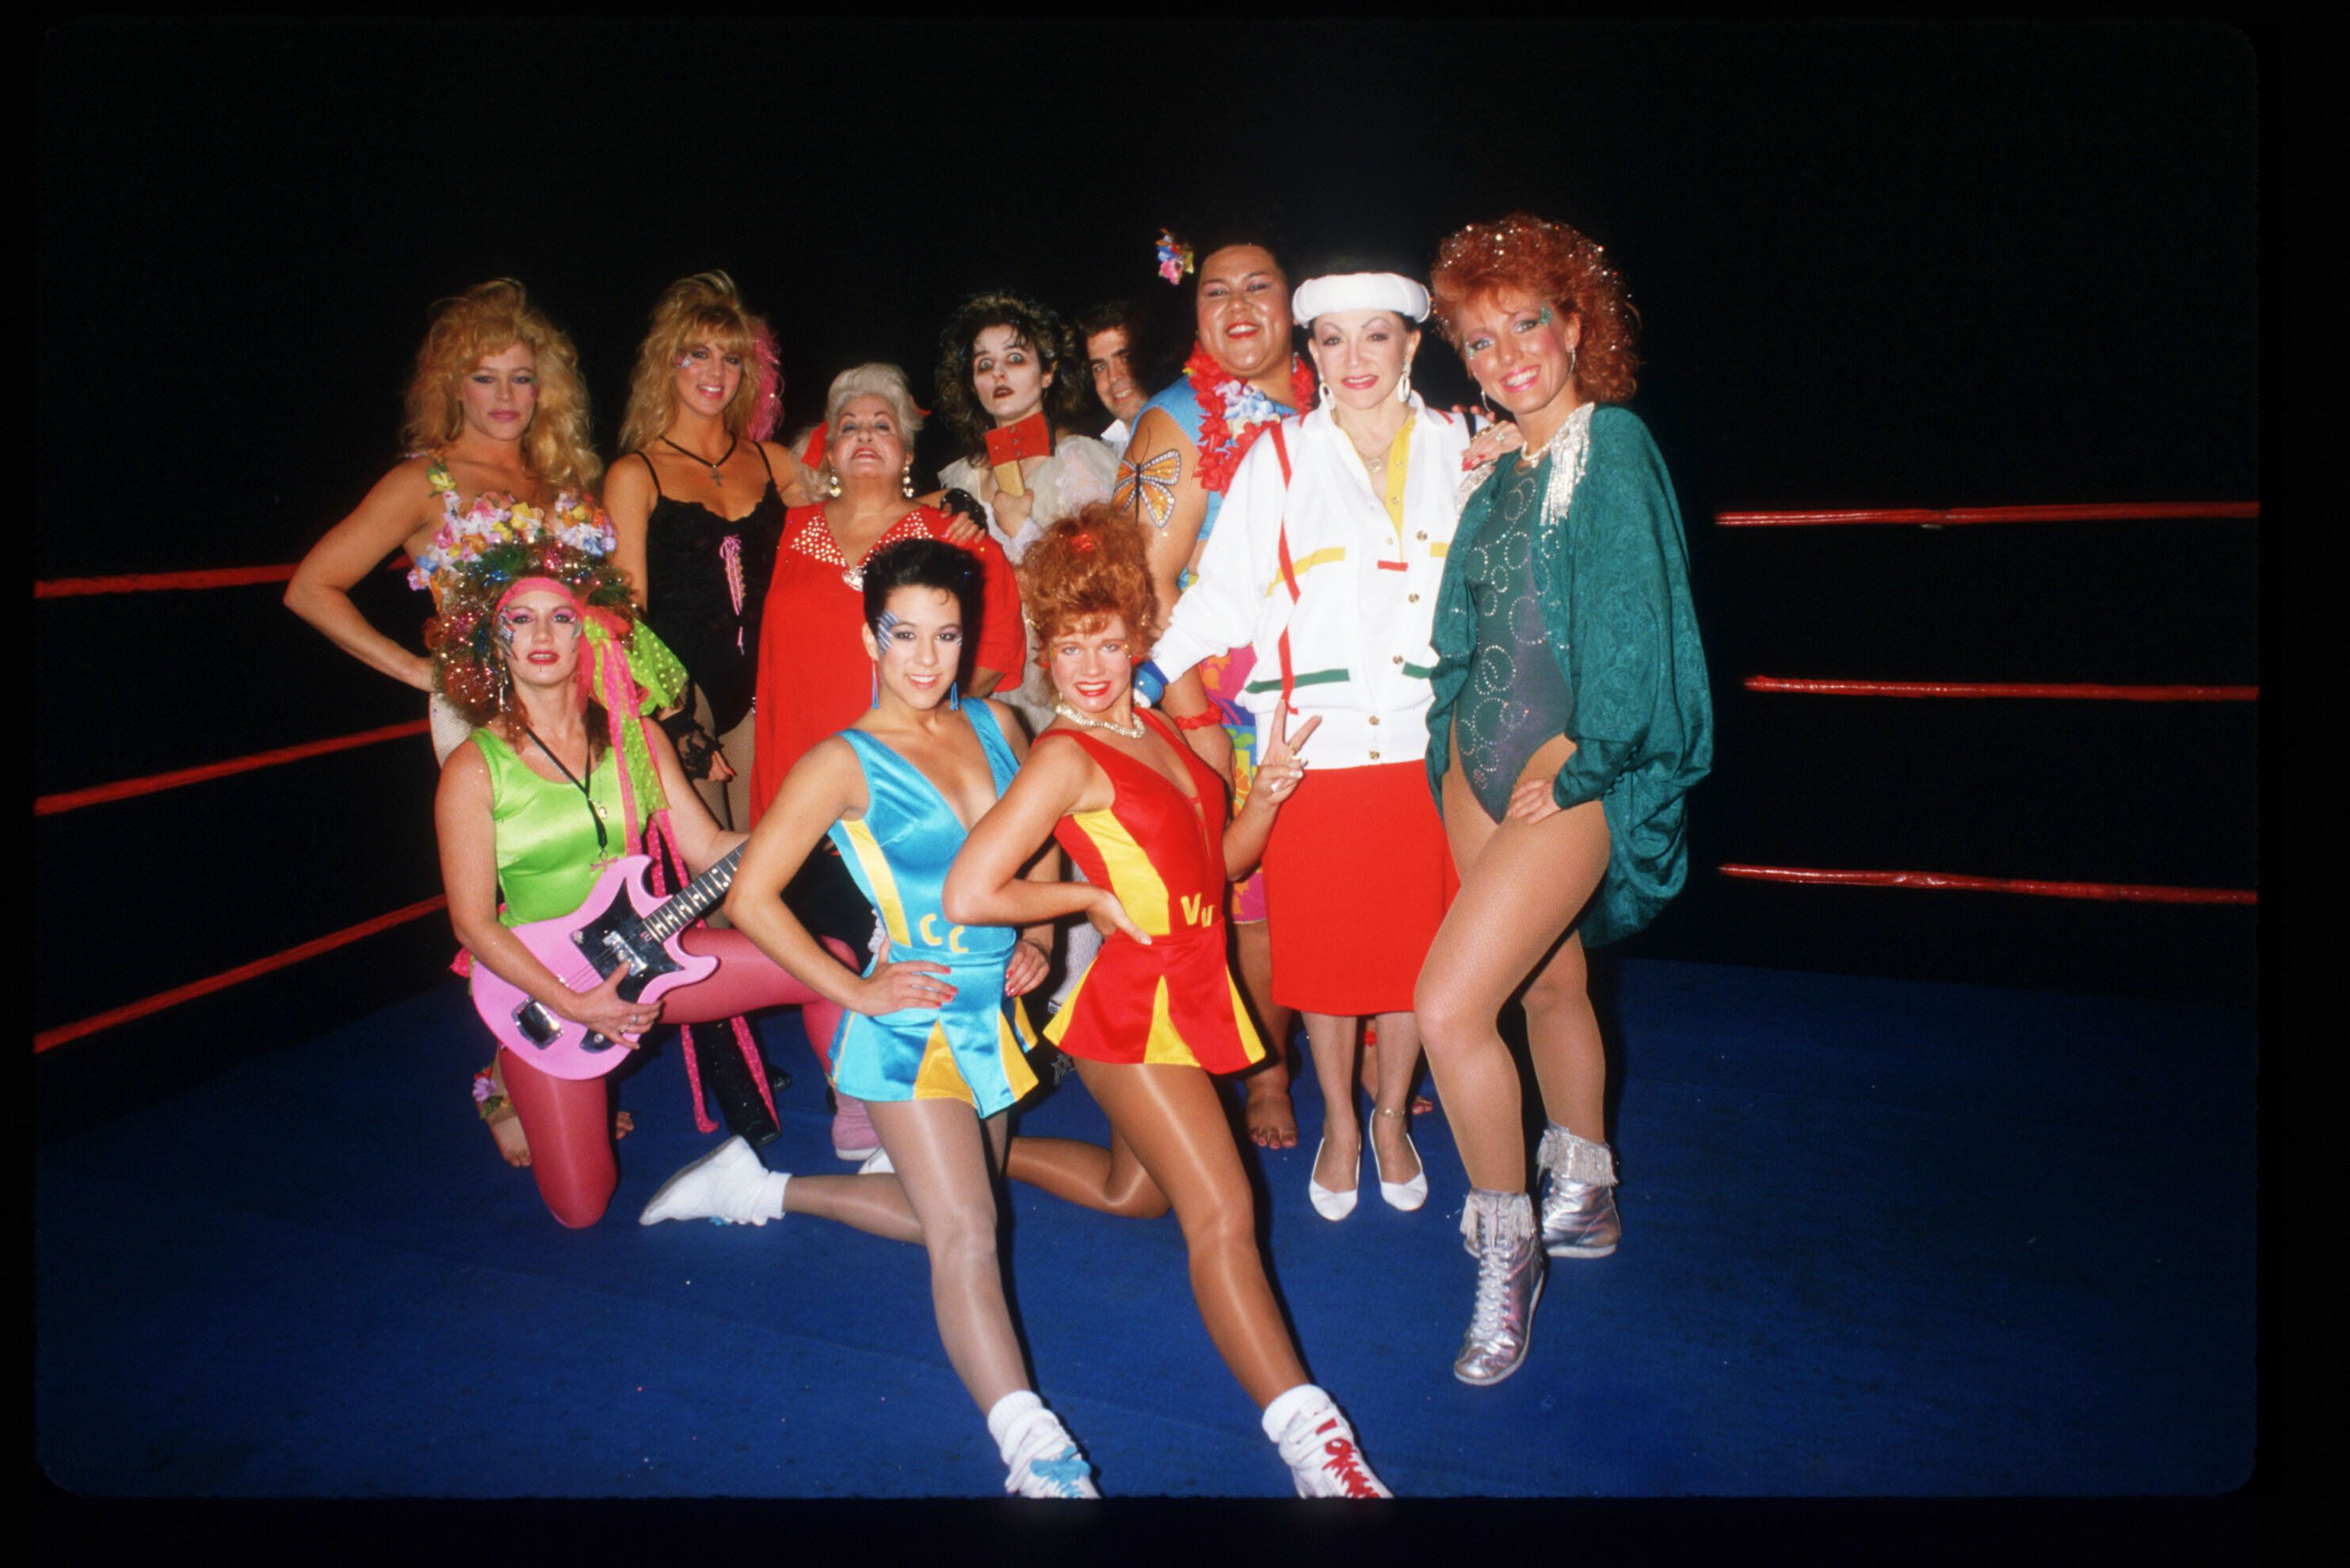 Members of the GLOW Girls pose in the ring.